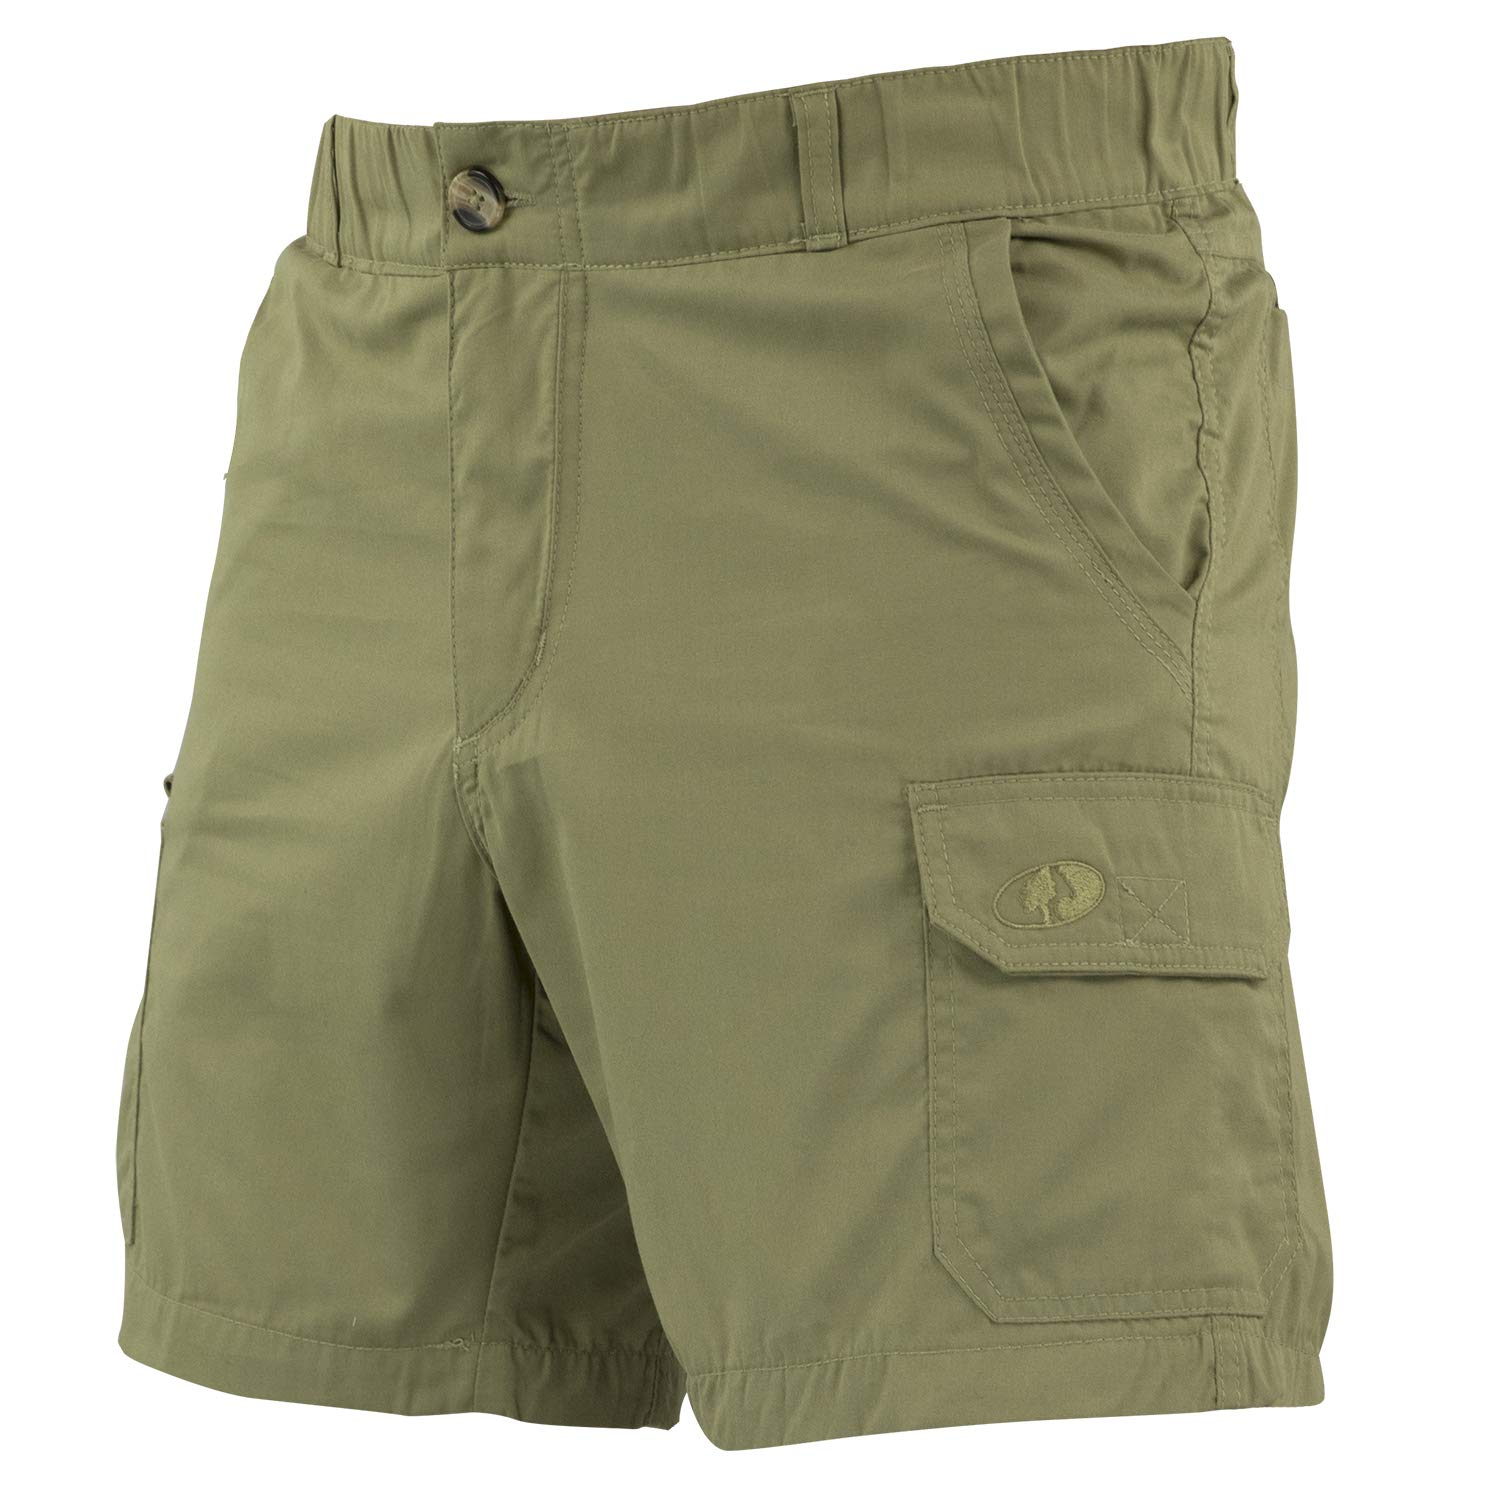 Mossy Oak Men's Quick Dry Hiking Shorts for Outdoor, Fishing, Tactical Use by Mossy Oak